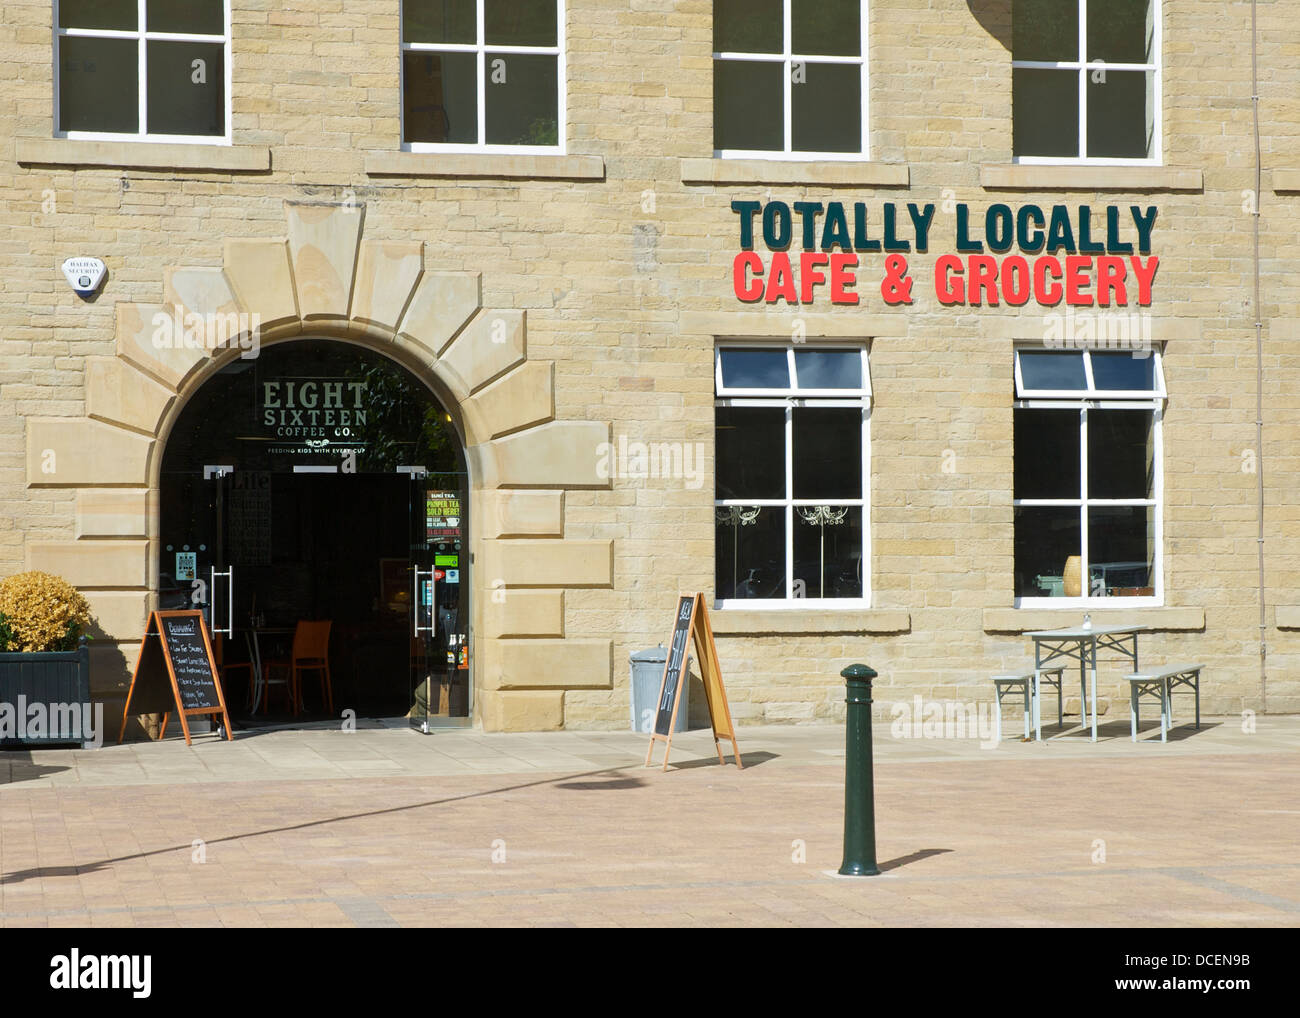 Totally Locally, Cafe and Grocery, at Dean Clough Mills, Halifax, West Yorkshire, England UK - Stock Image